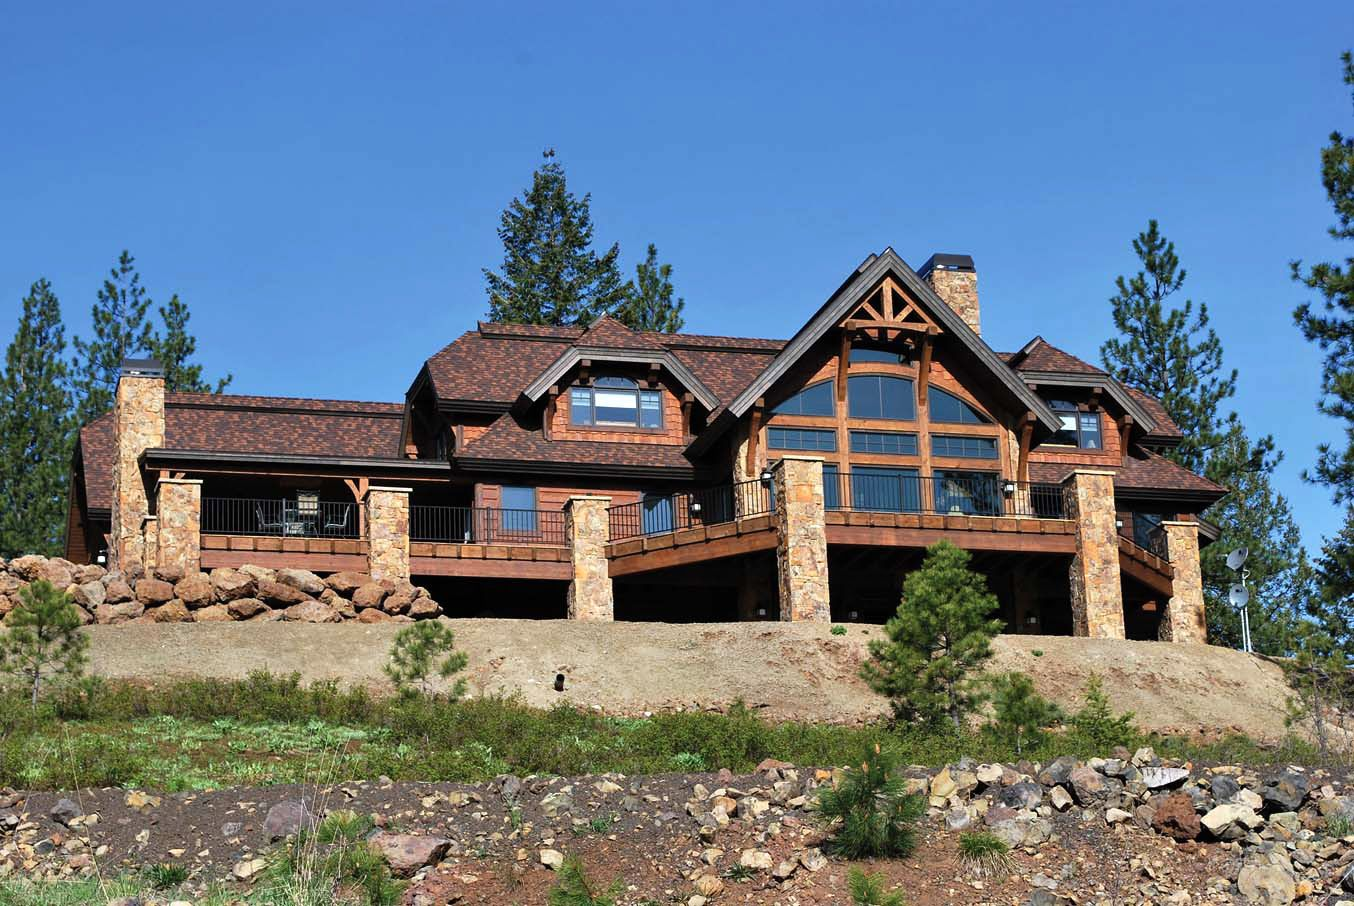 This Beautiful Timber Frame Home Overlooks Some Breathtaking Scenery In  Idaho. Custom Timber Frame Design By PrecisionCraft.